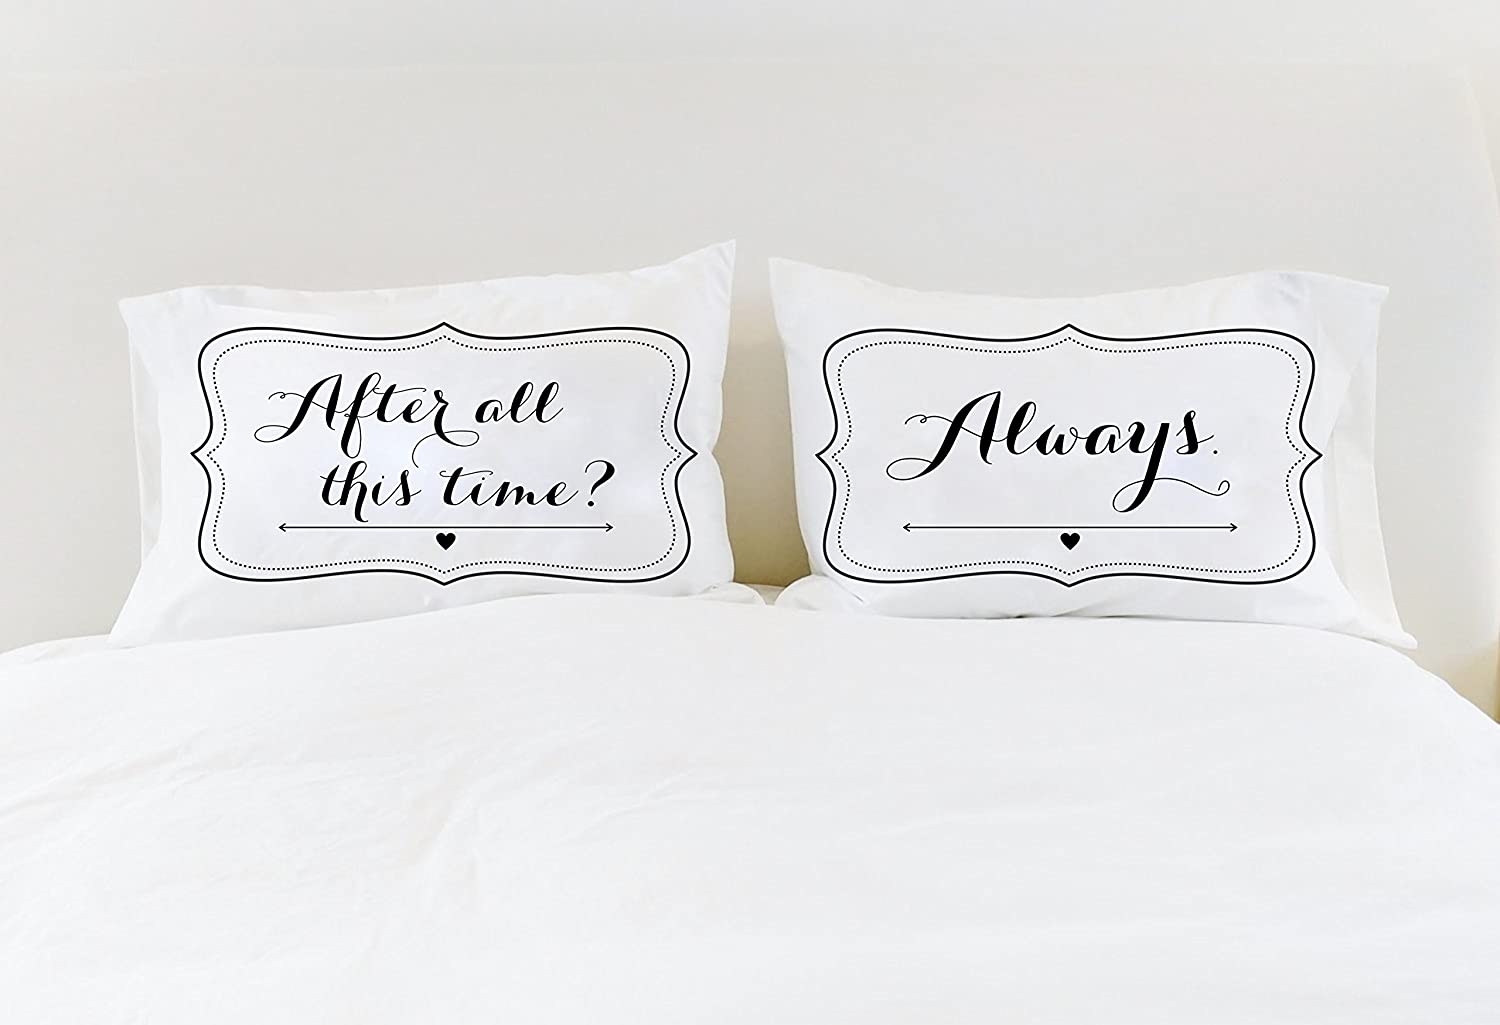 Cool Couple Pillowcases After All this